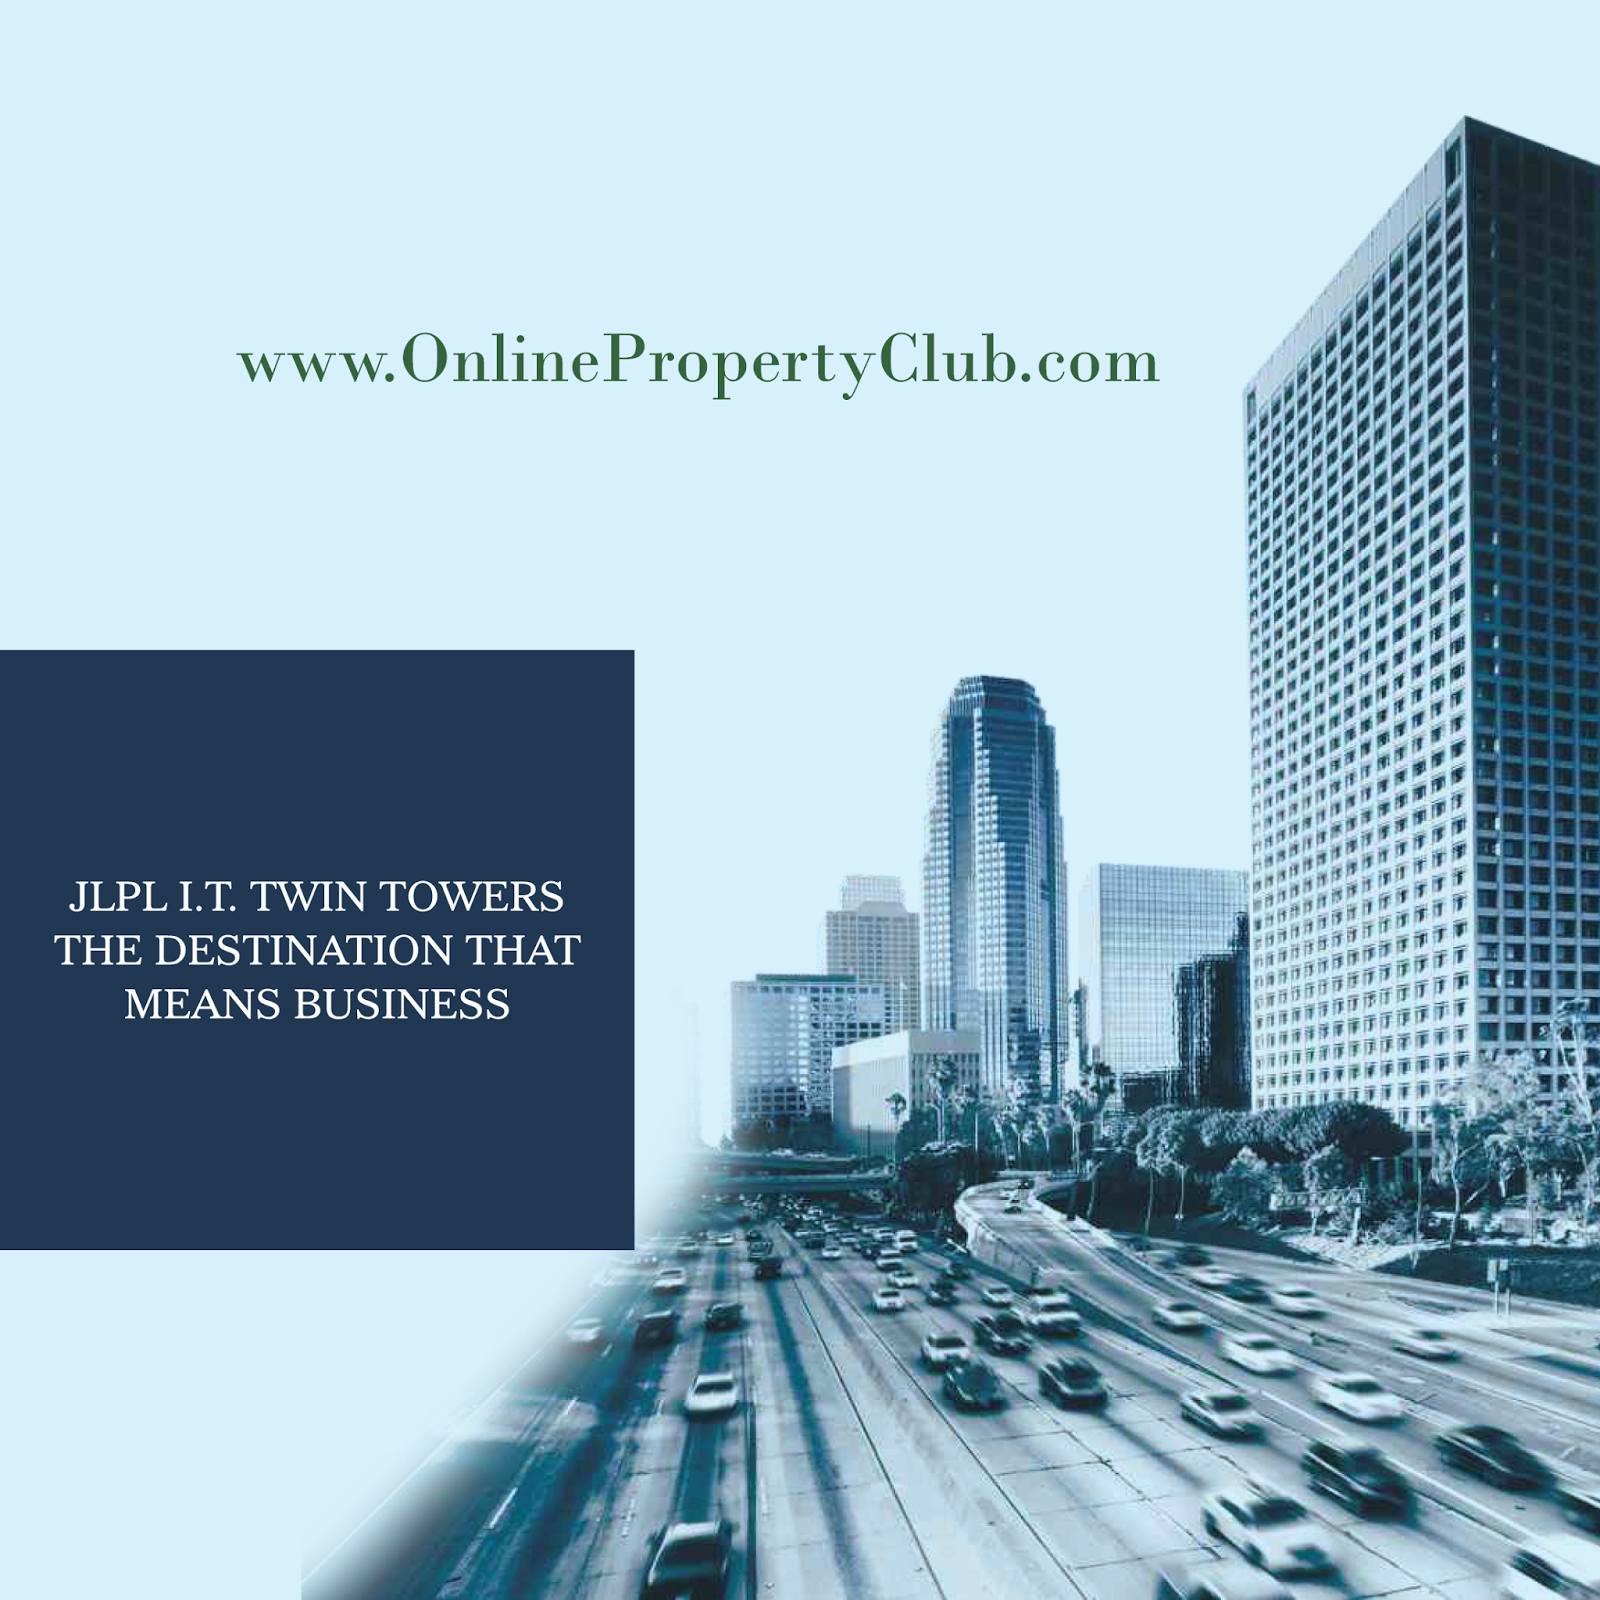 JLPL I.T. Twin Towers Commercial Shops, Showroom, Office. with Assured Returns Till Posession.